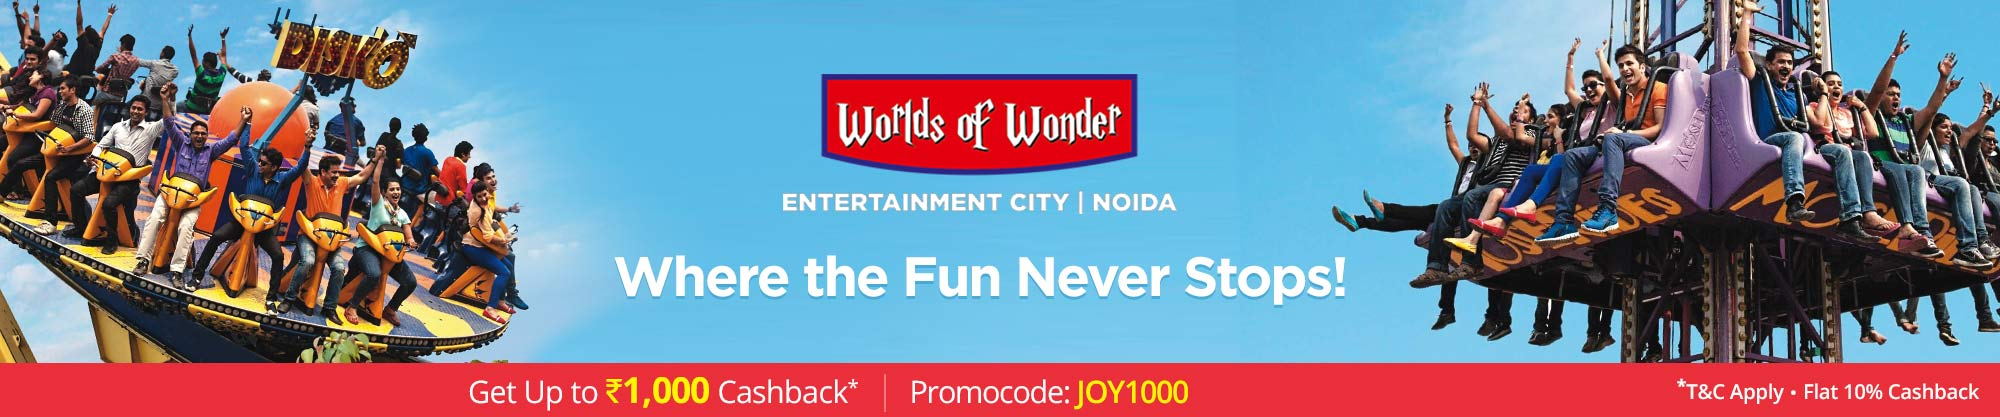 Worlds of Wonder Theme Park | Delhi NCR